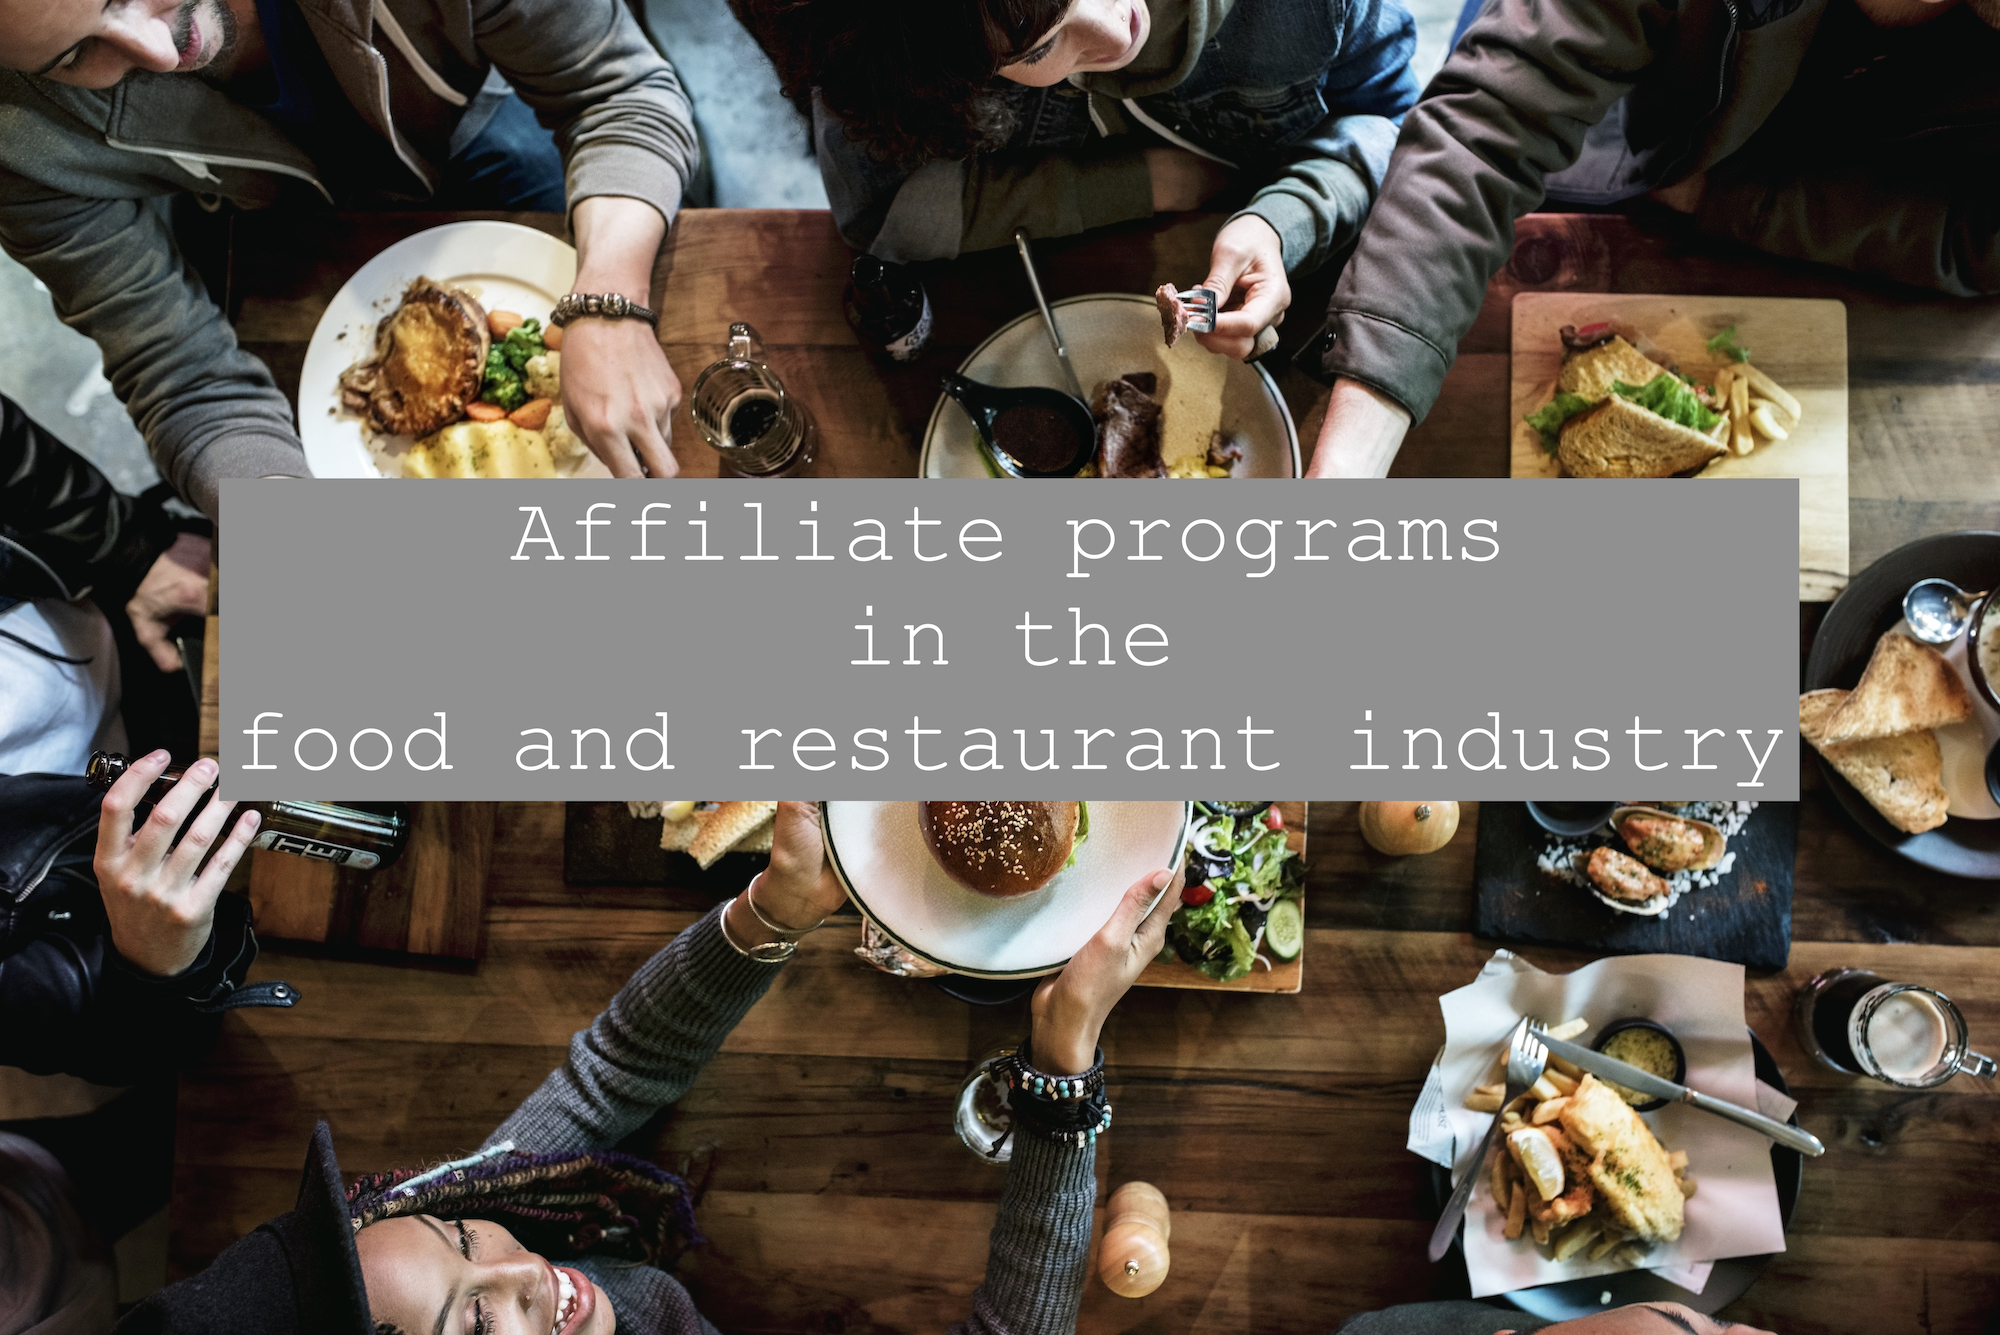 Affiliate programs in the food and restaurant industry